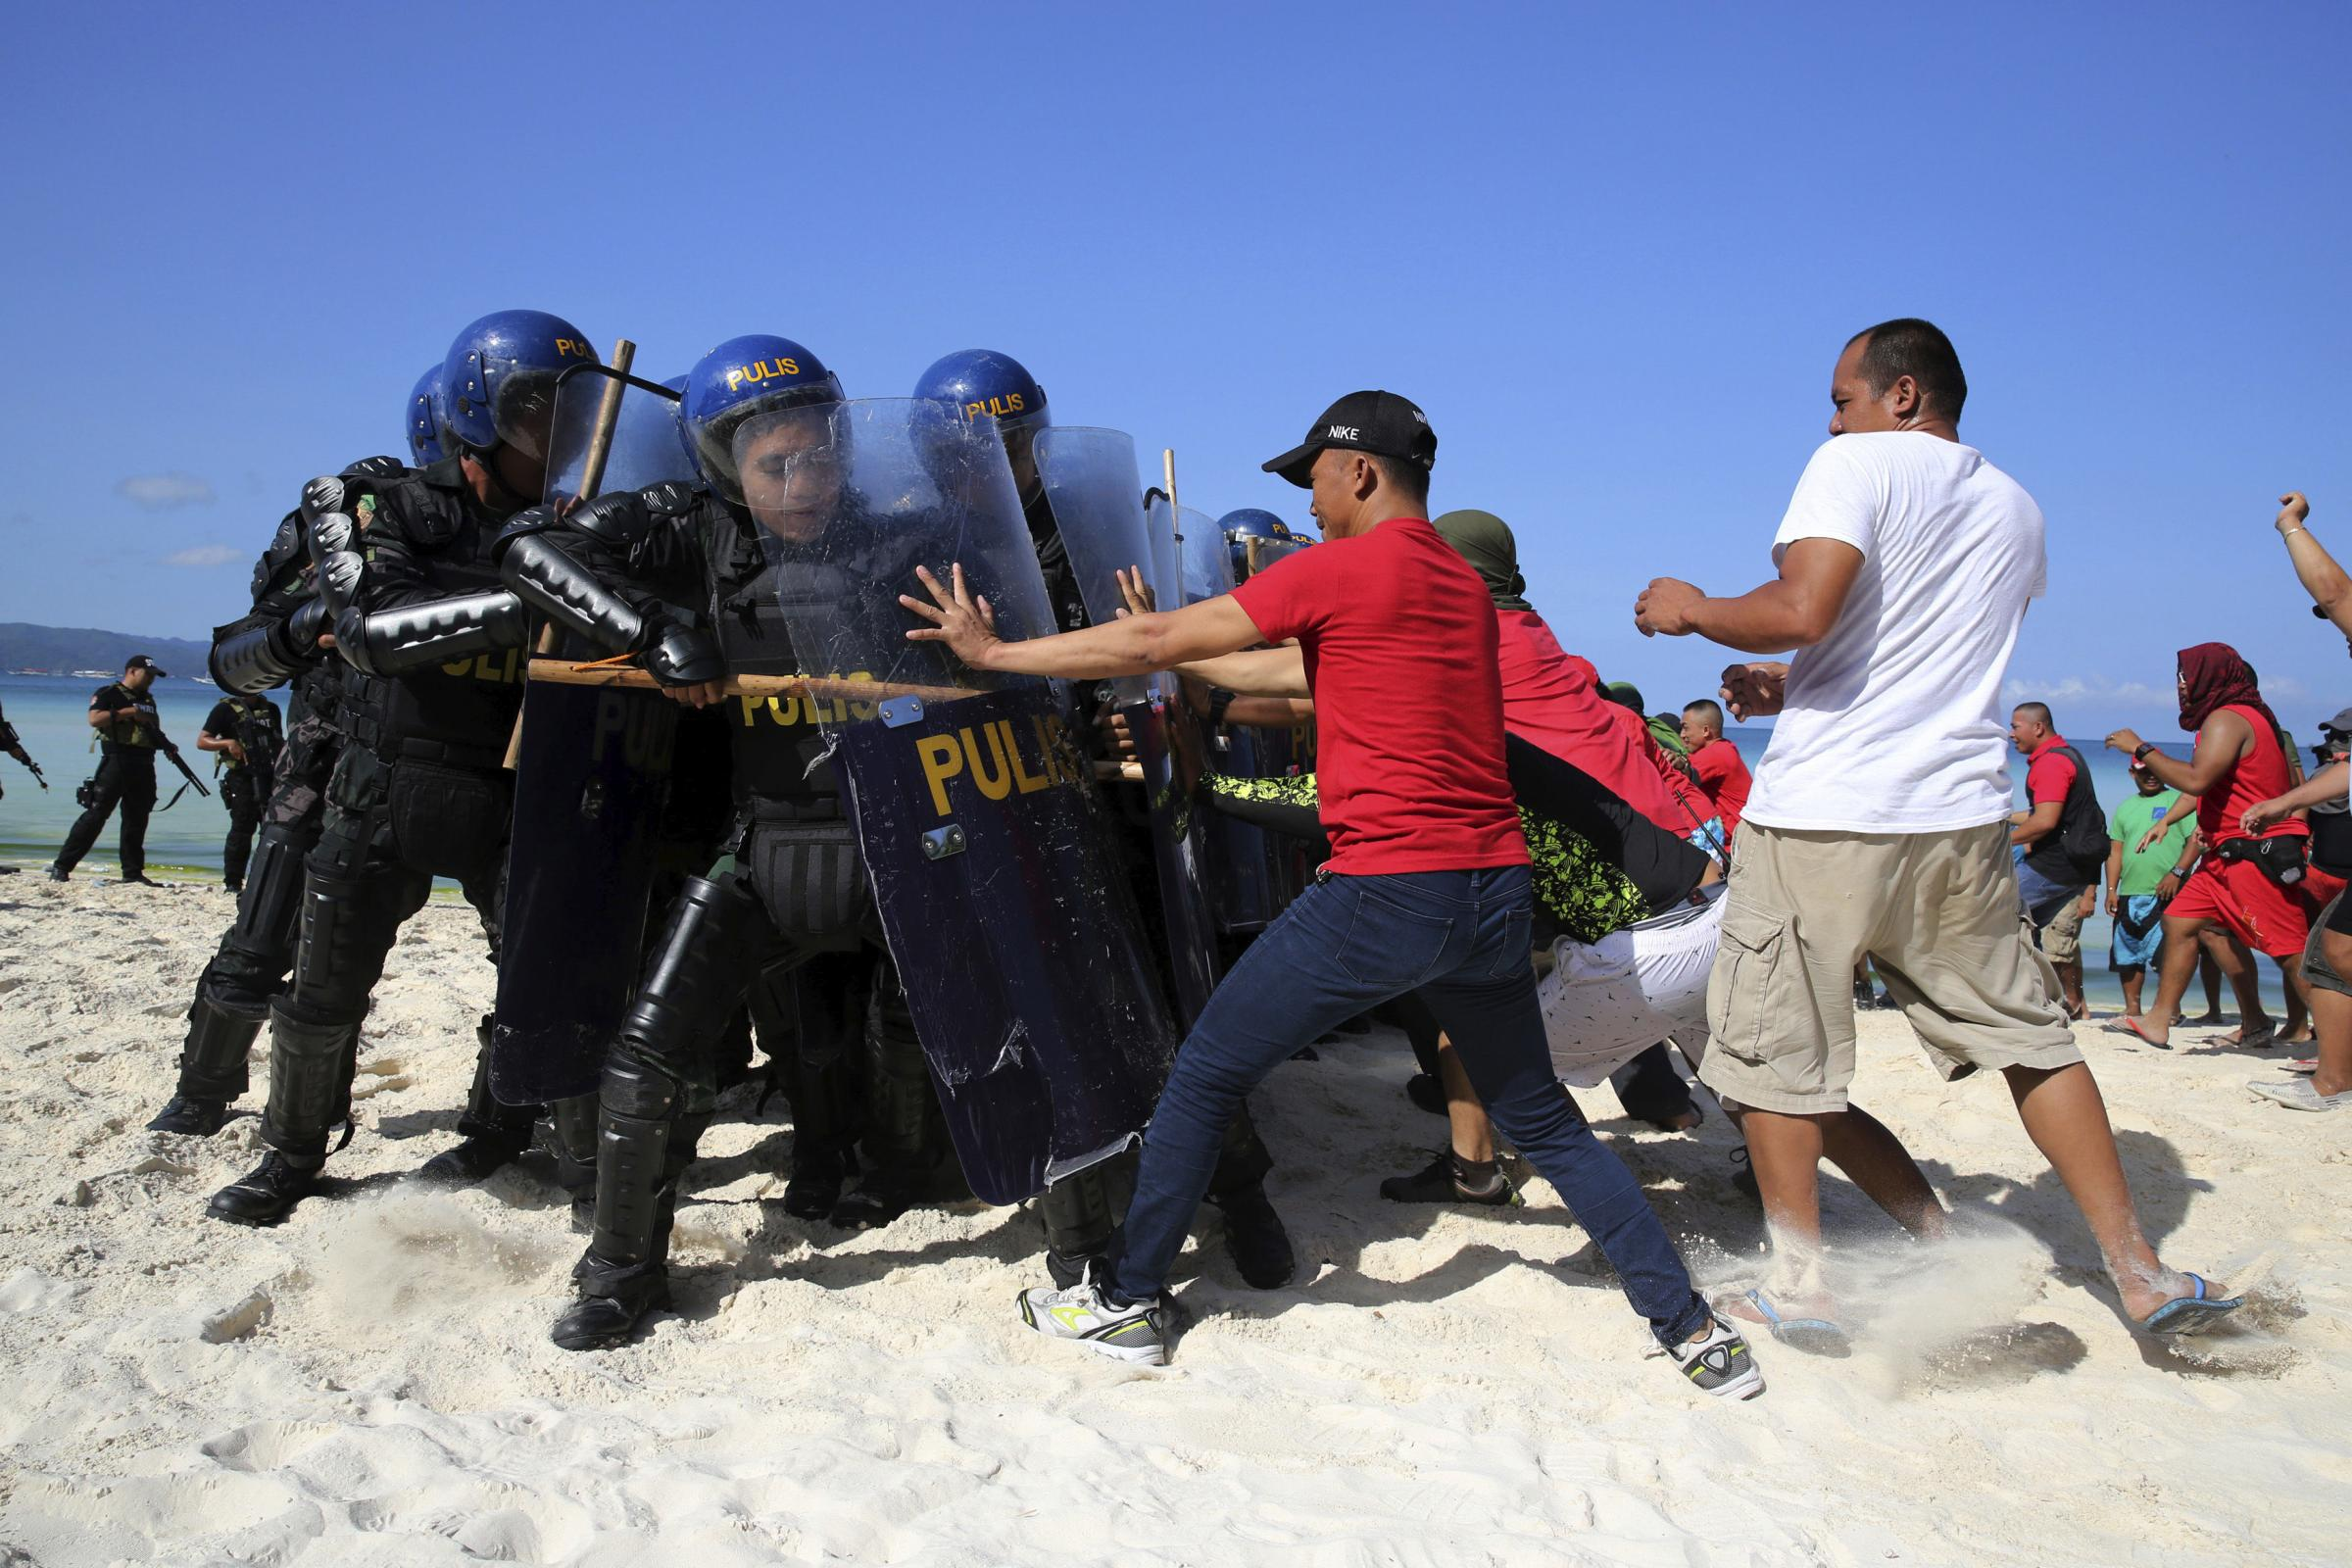 Philippines policemen acting as protesters attack anti-riot police during a security drill at the country's most famous beach resort island of Boracay, in central Aklan province, Philippines Wednesday, April 25, 2018